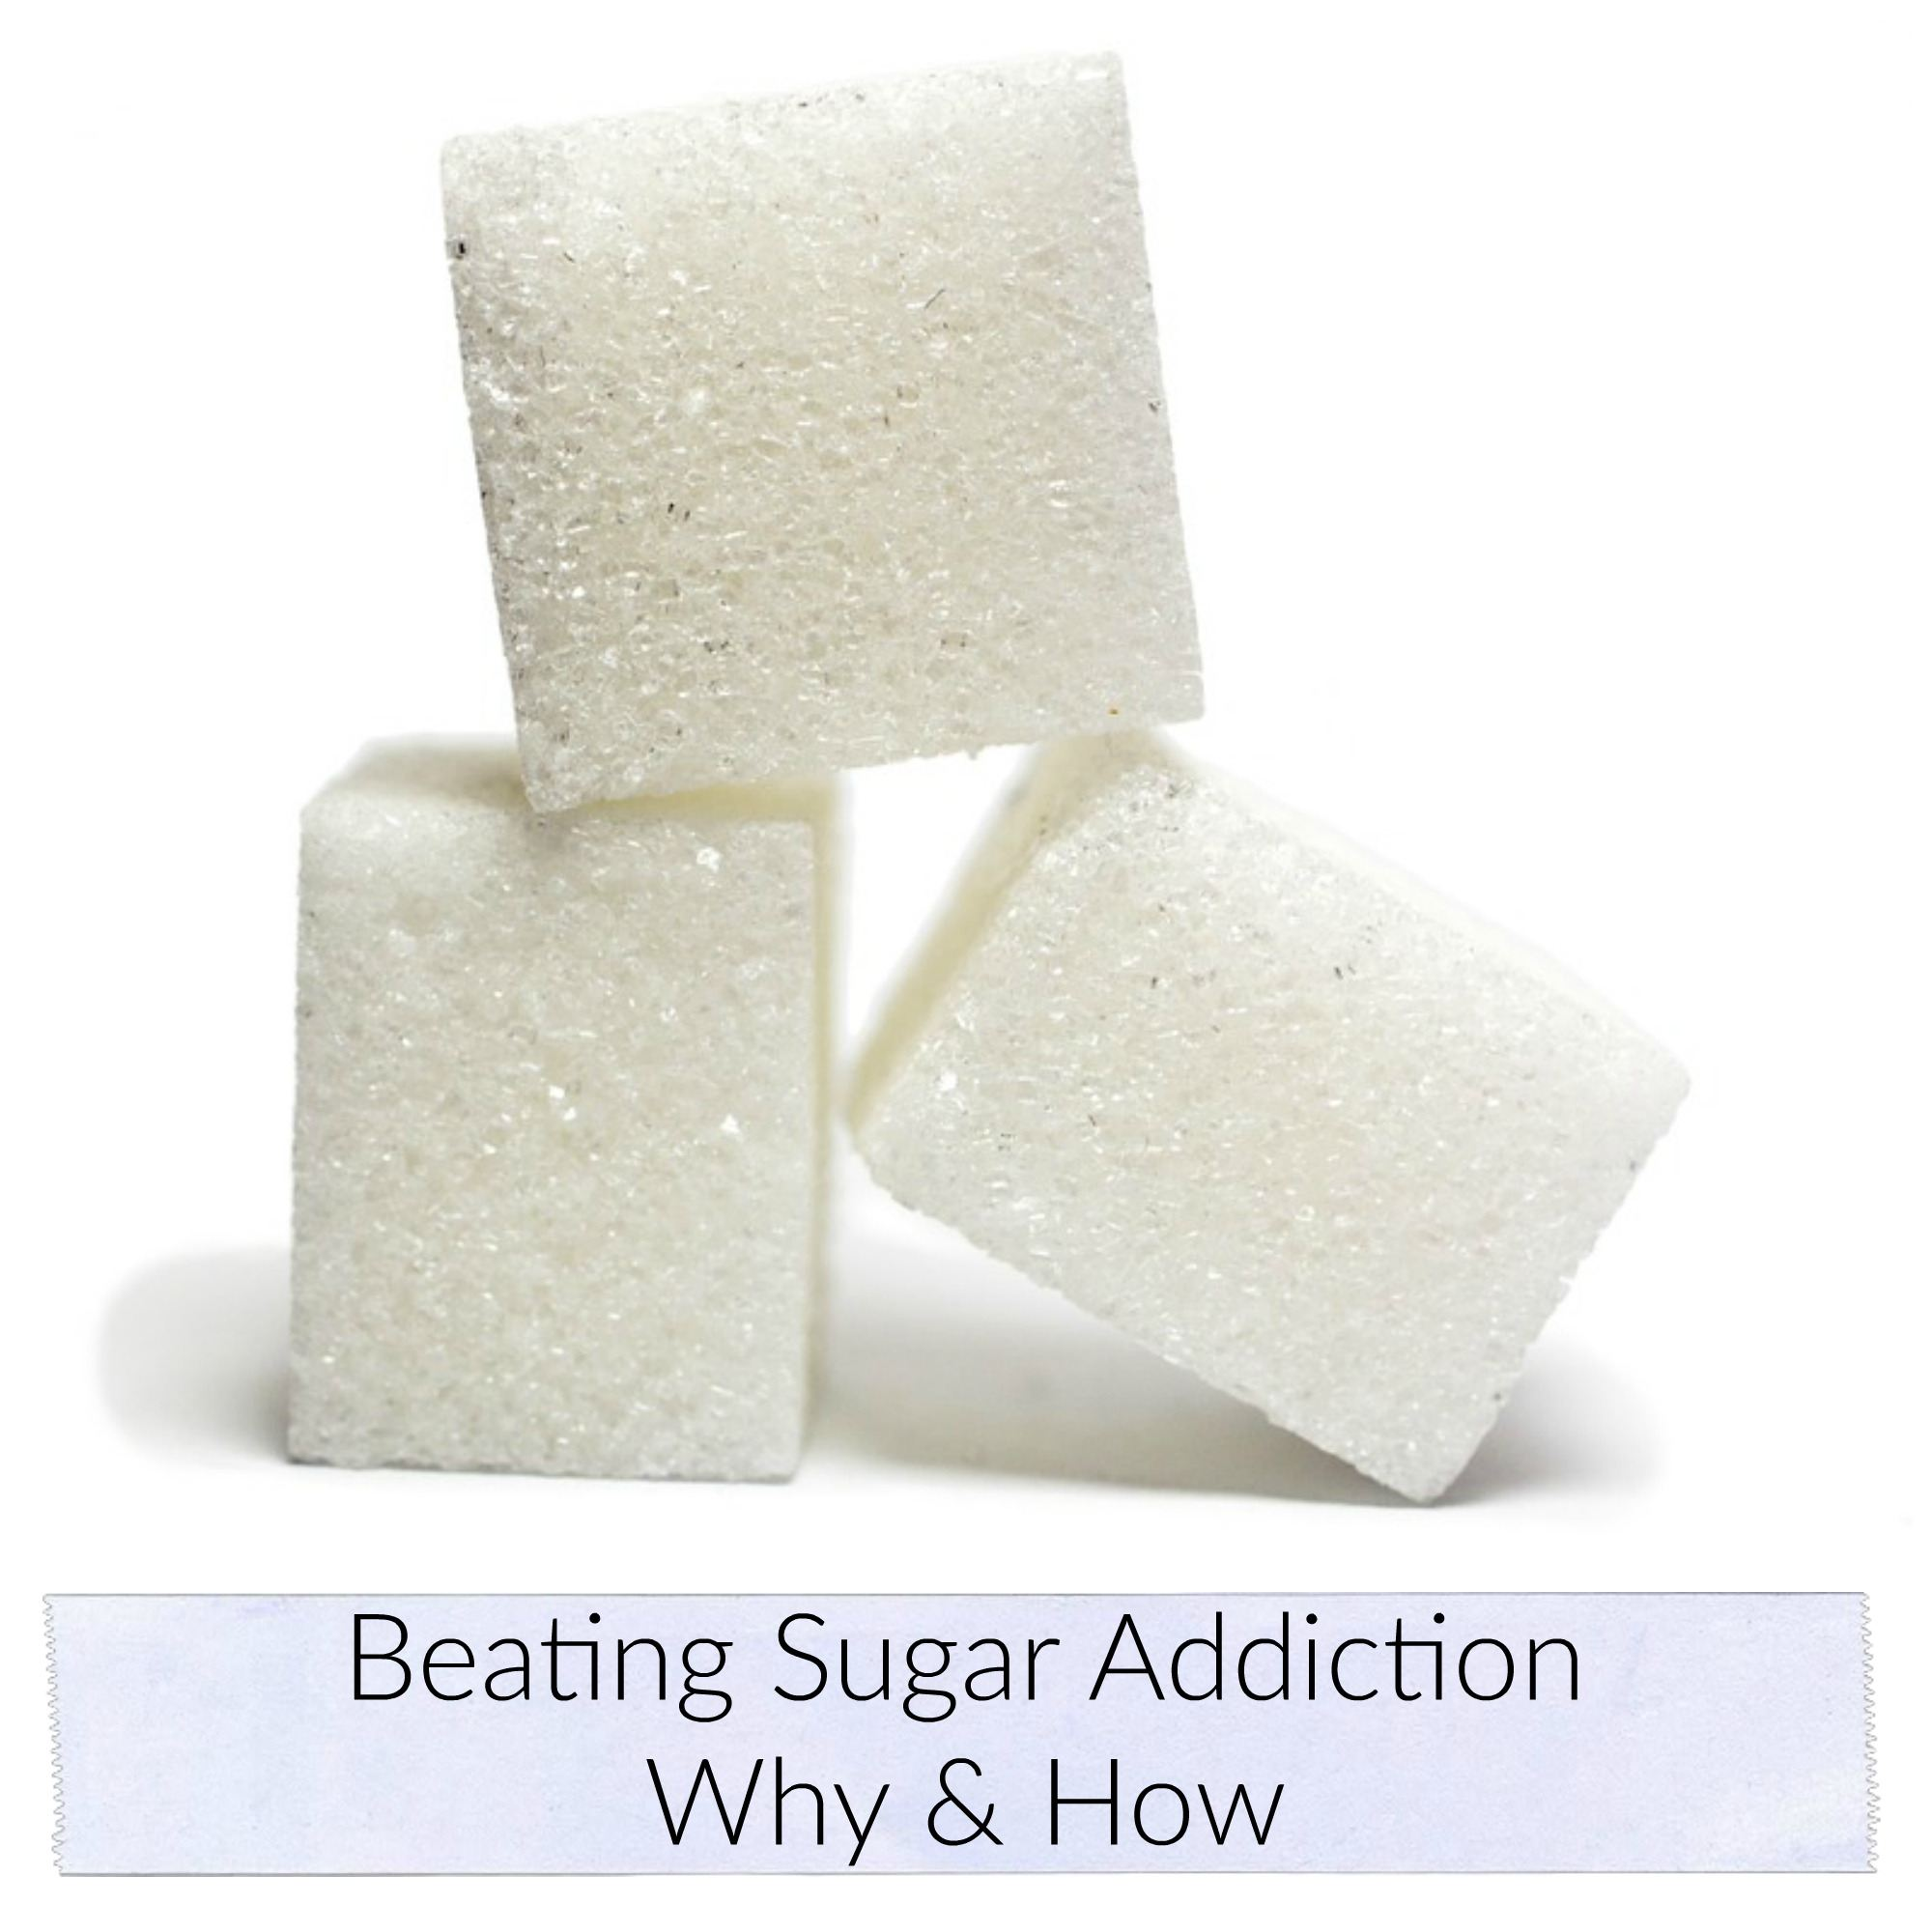 Why you need to reduce your refined sugar intake - the dangers of added sugar and its health consequences